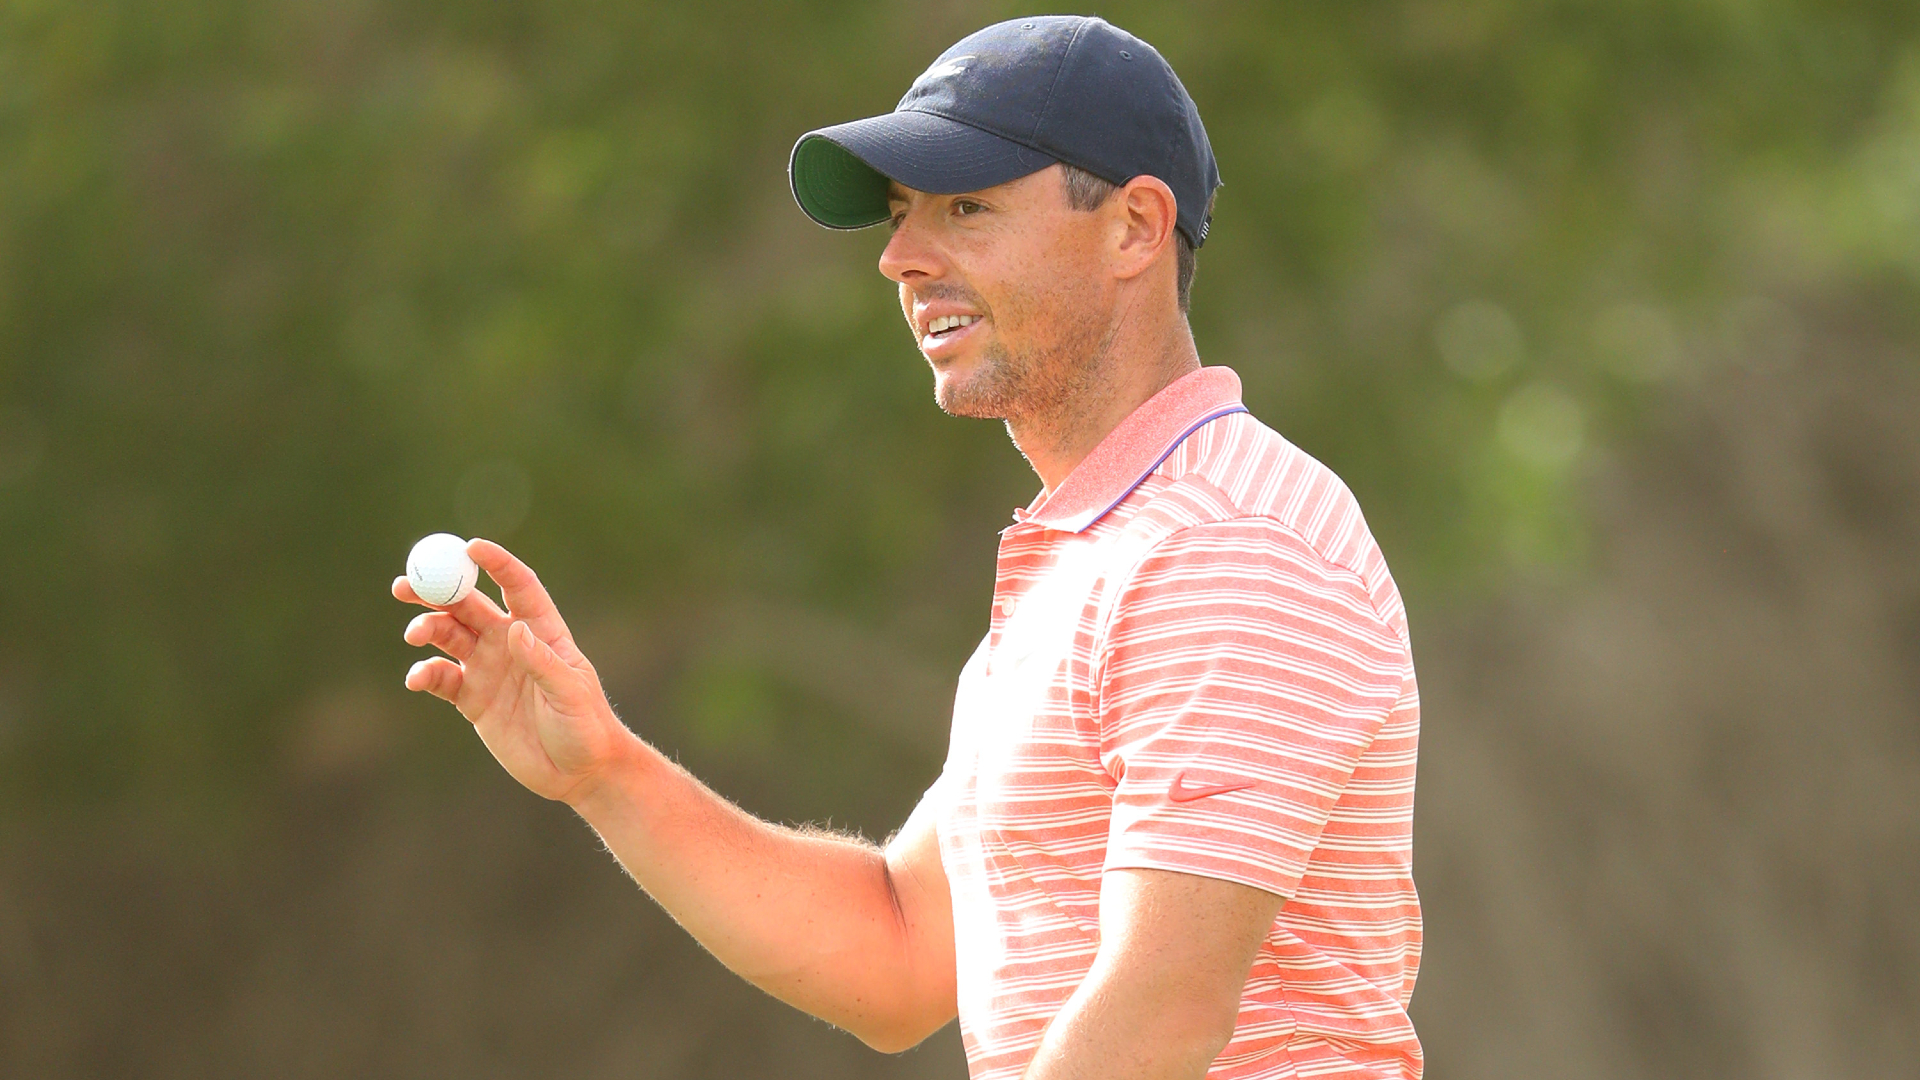 Rory McIlroy eager to end long wait: I have to make it my turn